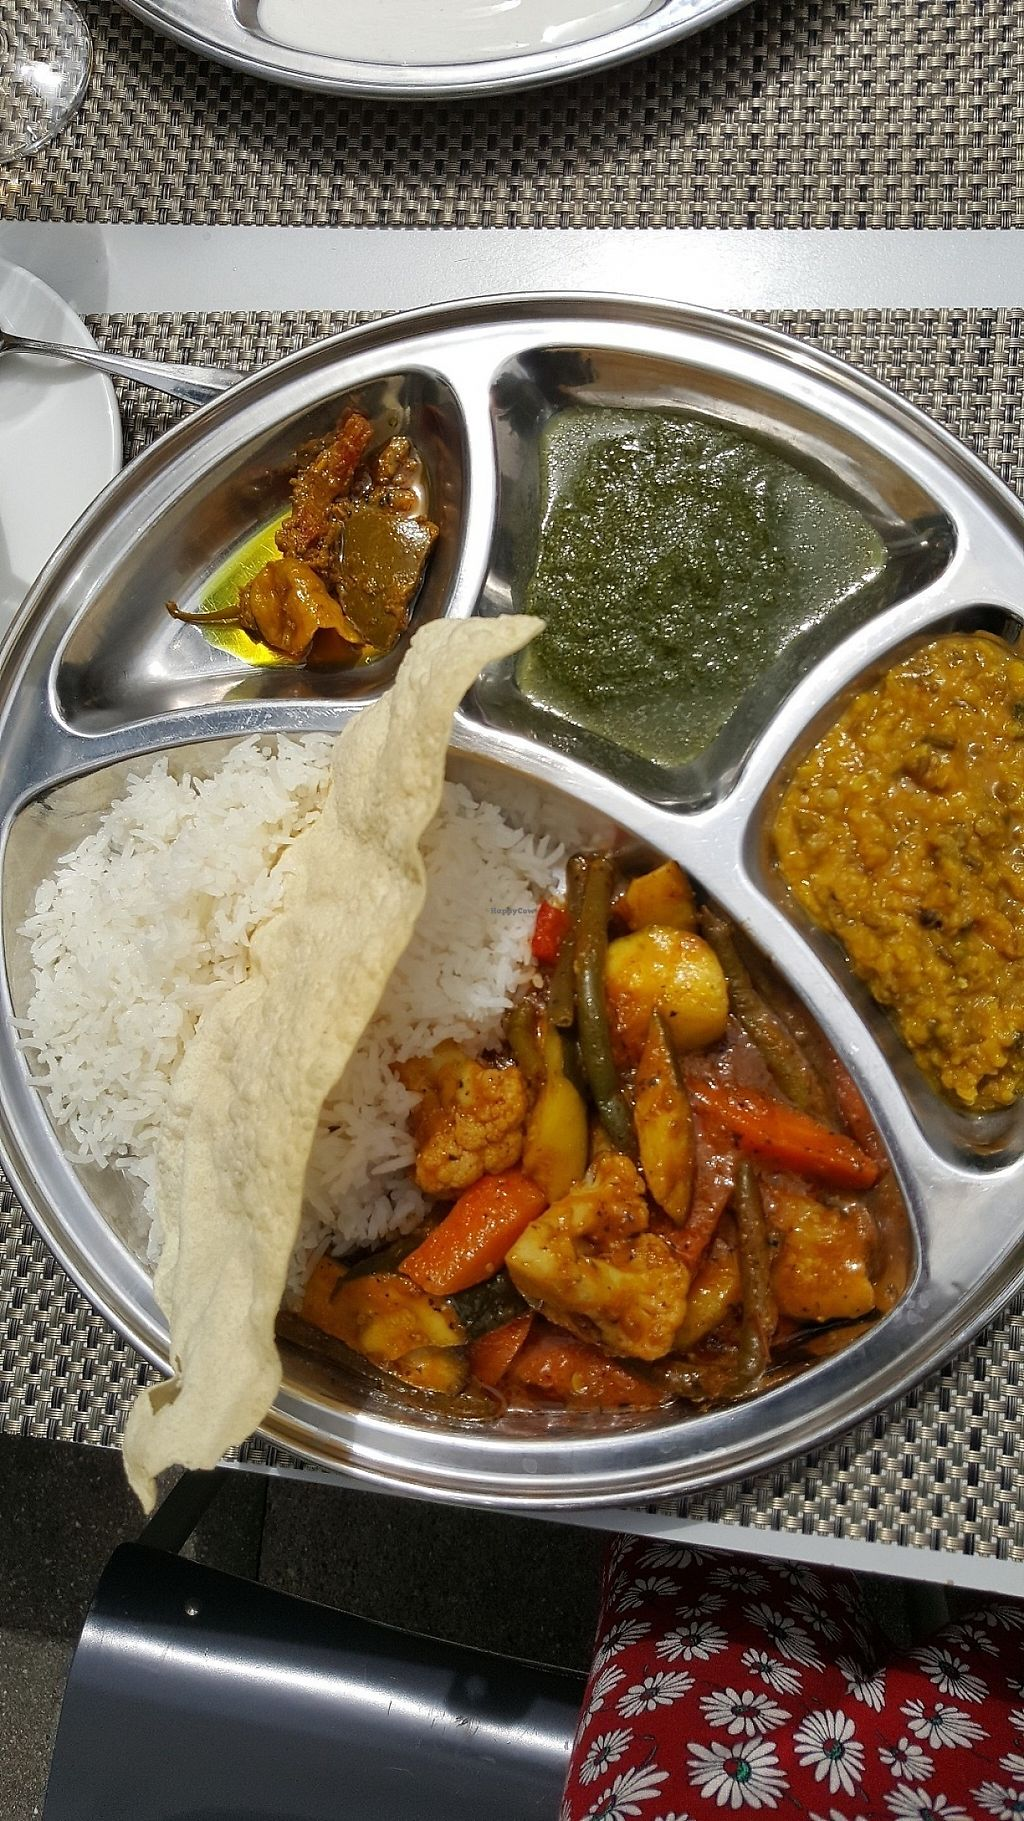 """Photo of Okra  by <a href=""""/members/profile/suki"""">suki</a> <br/>vegan mixed vegetables with dhal <br/> May 15, 2017  - <a href='/contact/abuse/image/51913/259099'>Report</a>"""